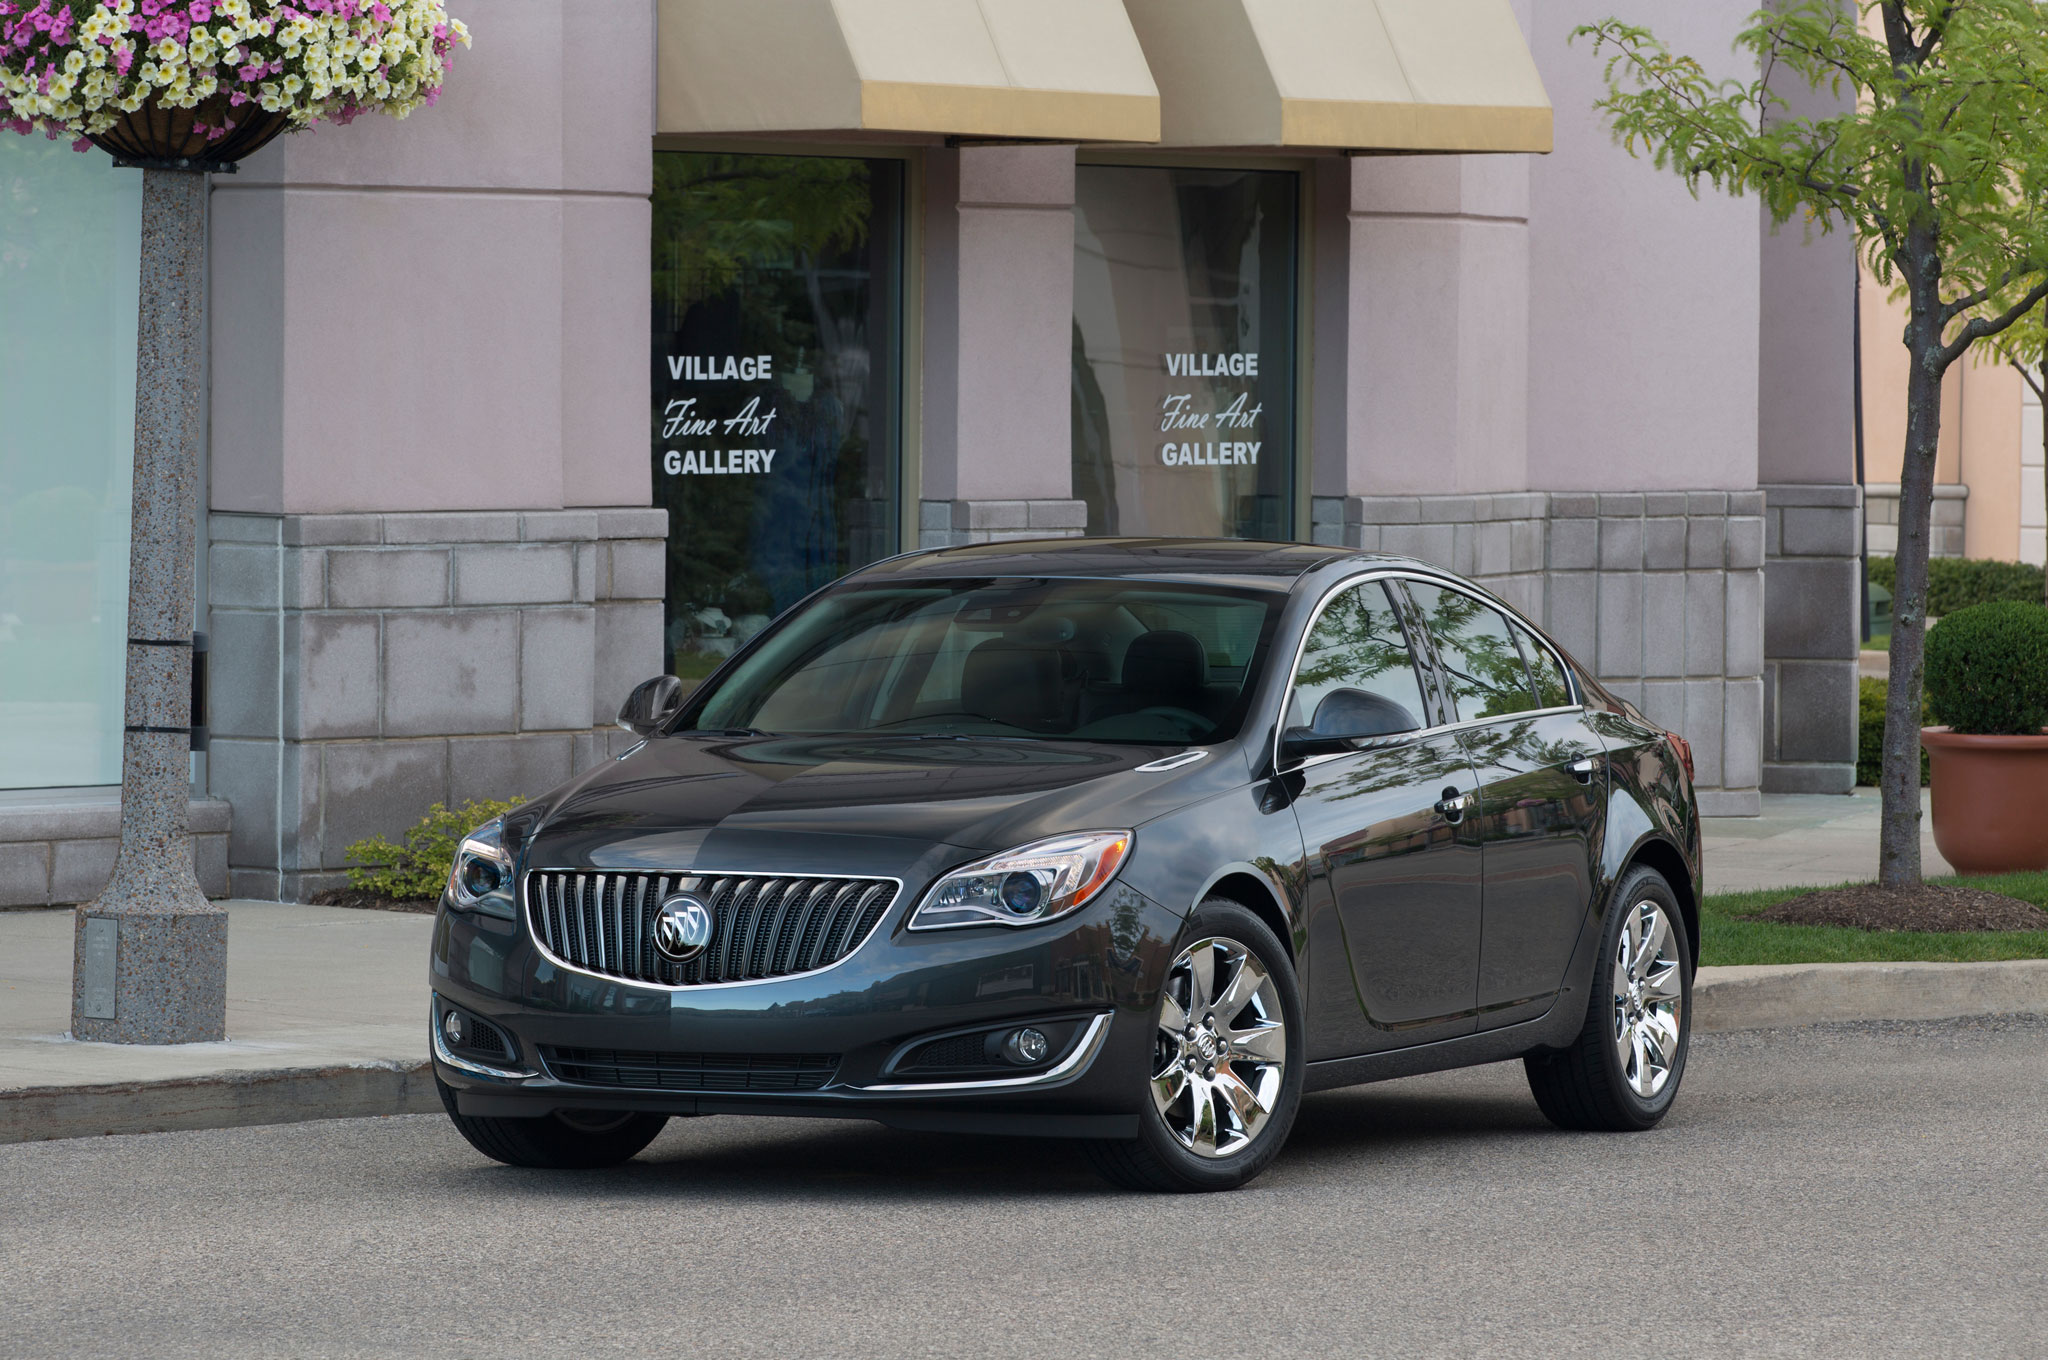 2014 Buick Regal Front Left View1